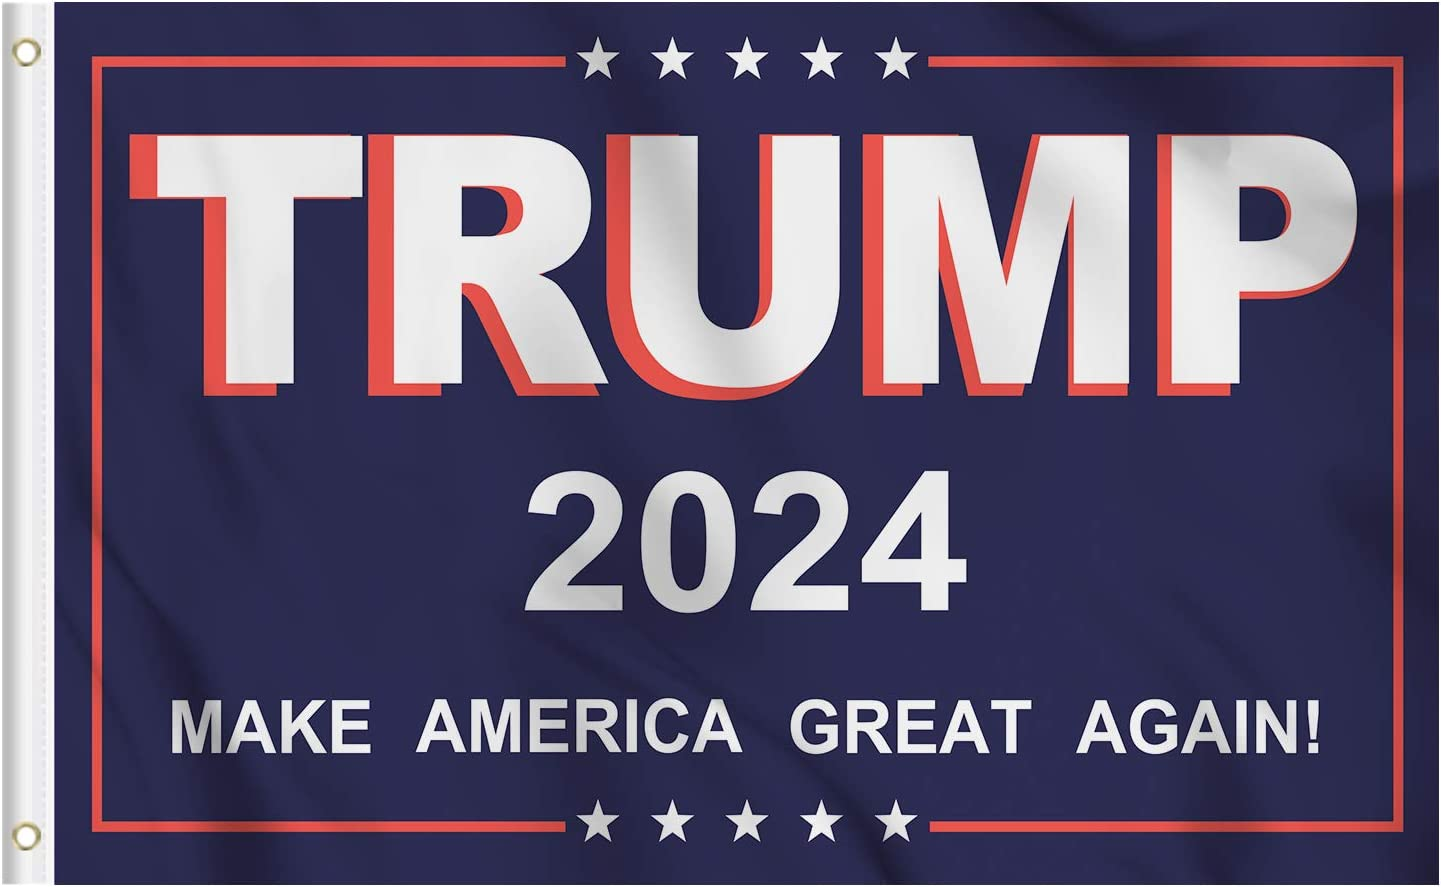 KENPMA Trump 2024 Make America Great MAGA Flag 3x5 ft House Dorm Room Wall Banner Garden Porch Yard Sign Lawn Patio Decorative Flags with Grommets - Printed 100D Polyester - Indoor/Outdoor